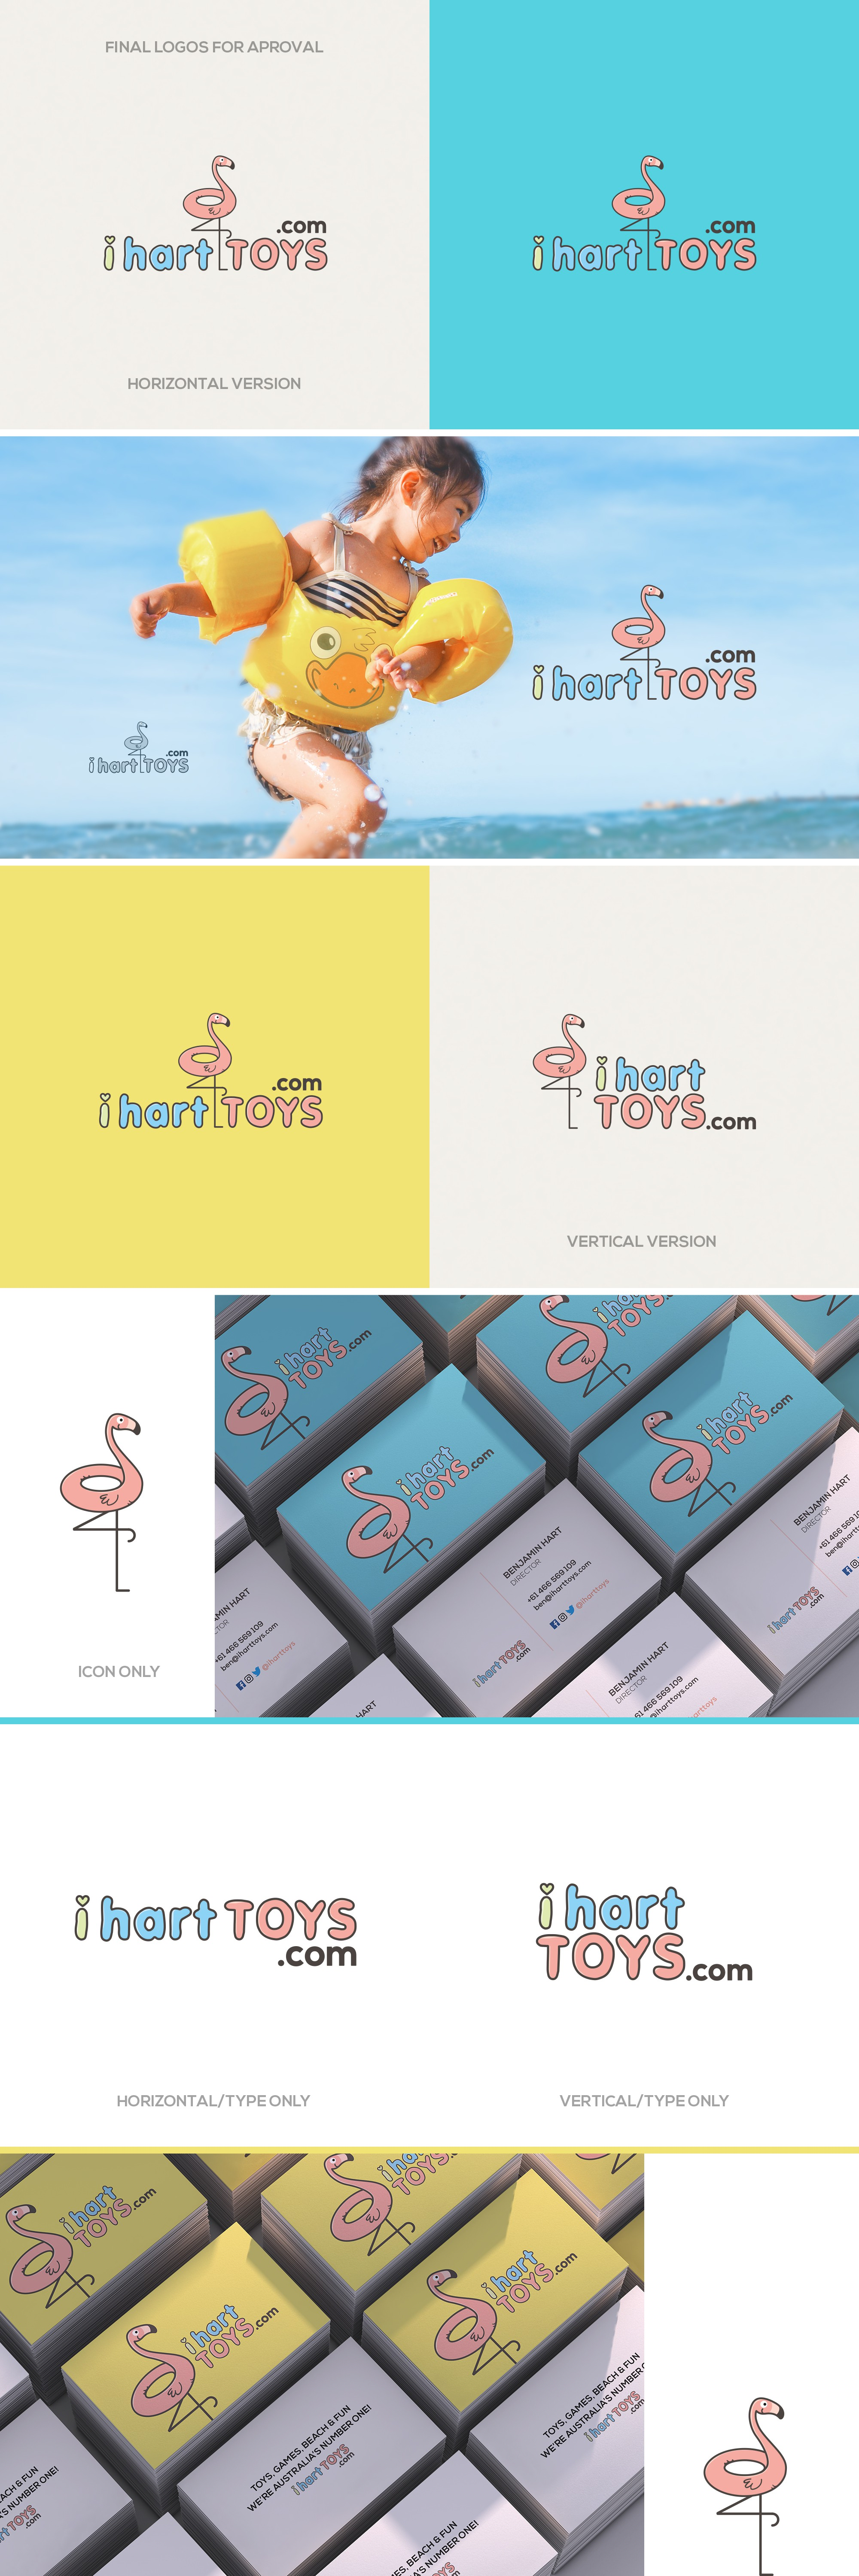 Design a fresh, modern and super cool logo/ business card for our online TOYS retail business